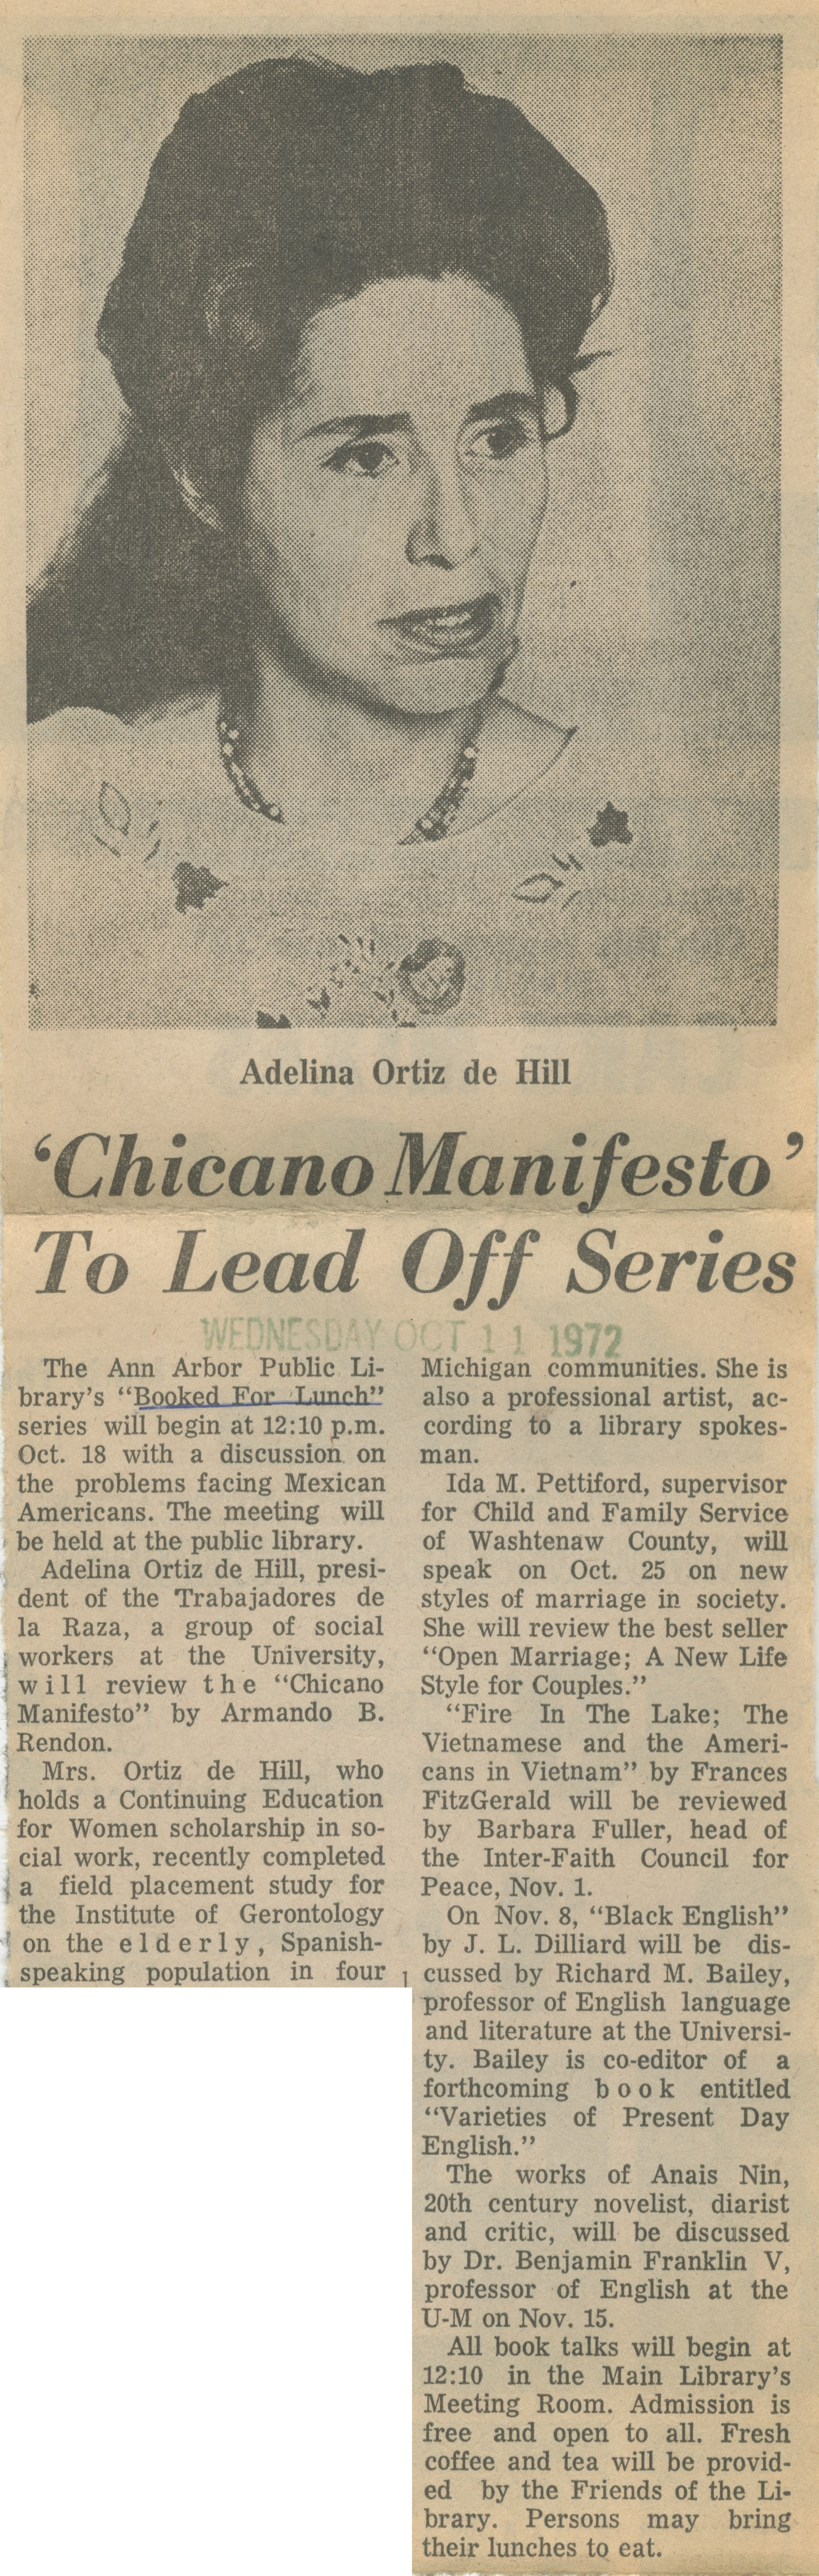 """Chicano Manifesto"" To Lead Off Series image"